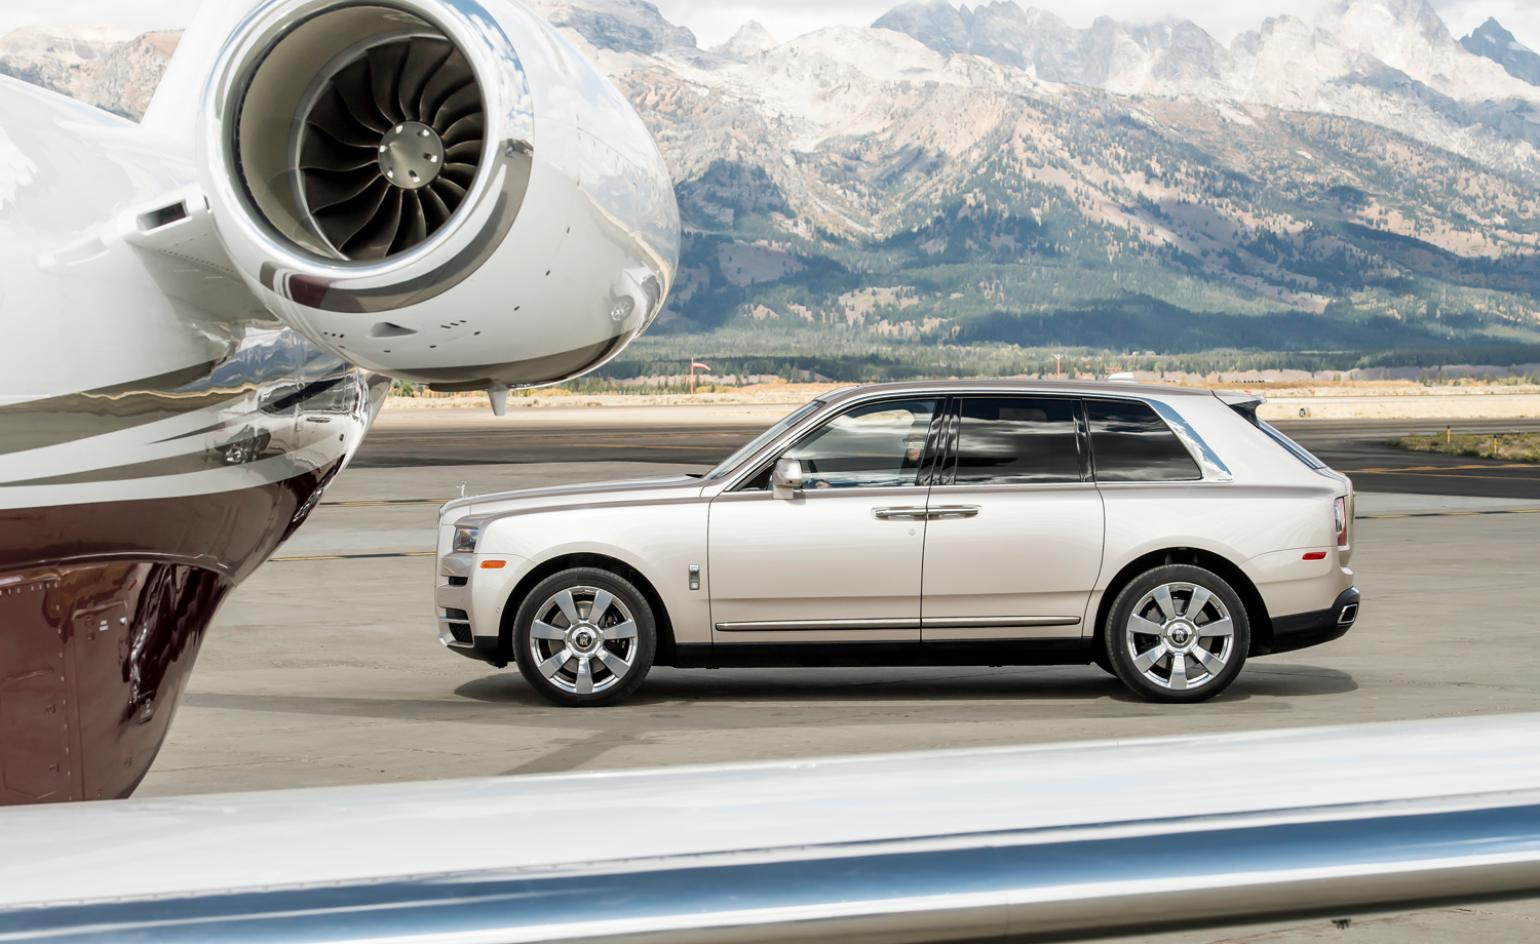 Can Rolls-Royce's bold new SUV conquer the peaks of luxury?